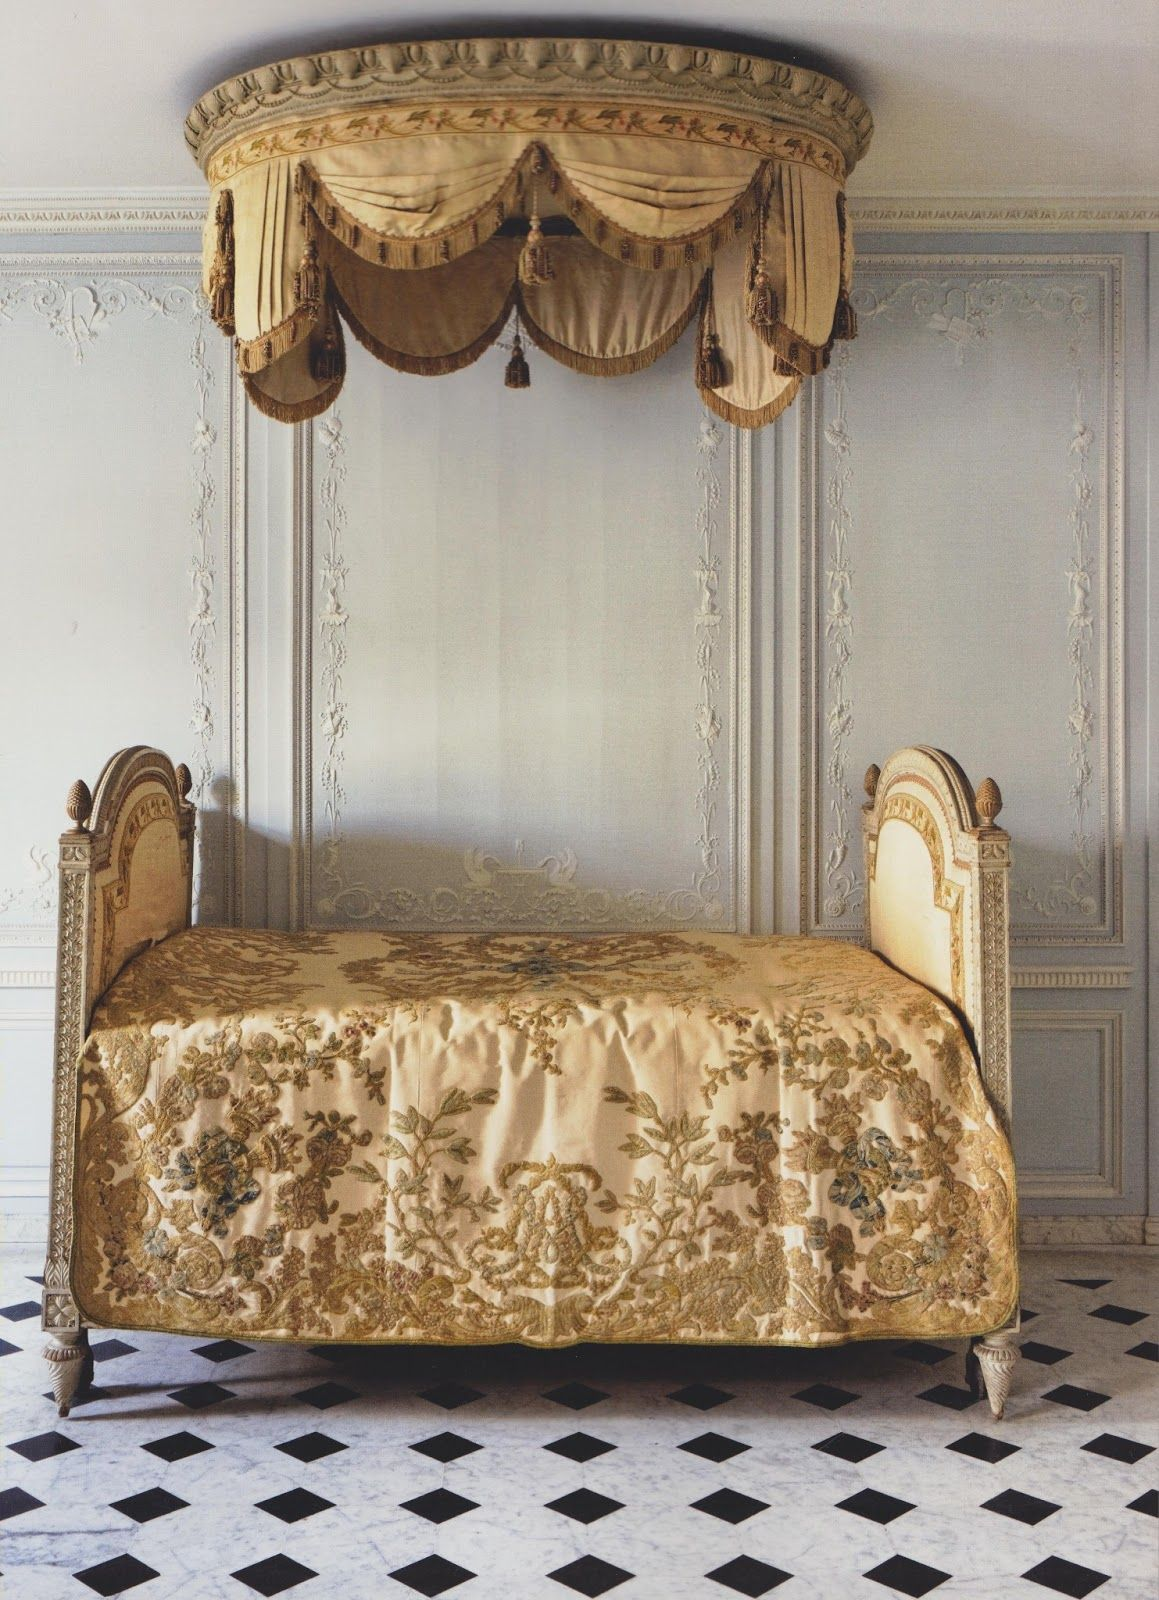 Shabby Castle Chic Rich And Gorgeous Home Decor Informal Bed For Bathroom Suite Of Louis Xvi 1785 Versailles